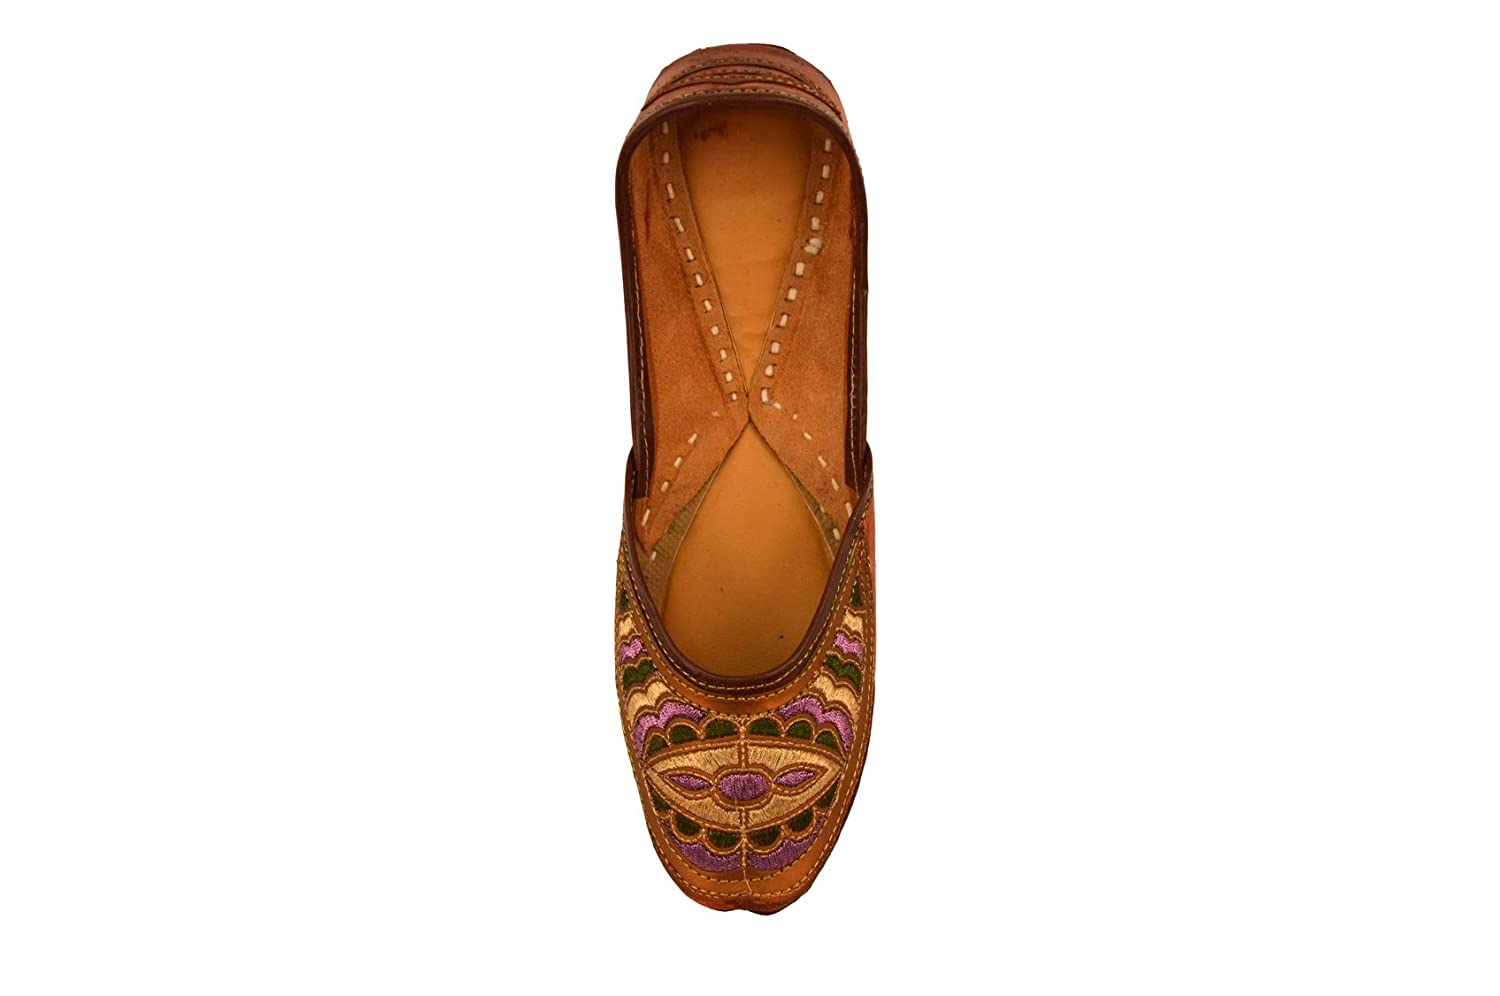 03a39edeb0aa Amazon.com: Handcrafted Women's Artisan Indian Slippers Womens Flat Shoes  Brown: Clothing